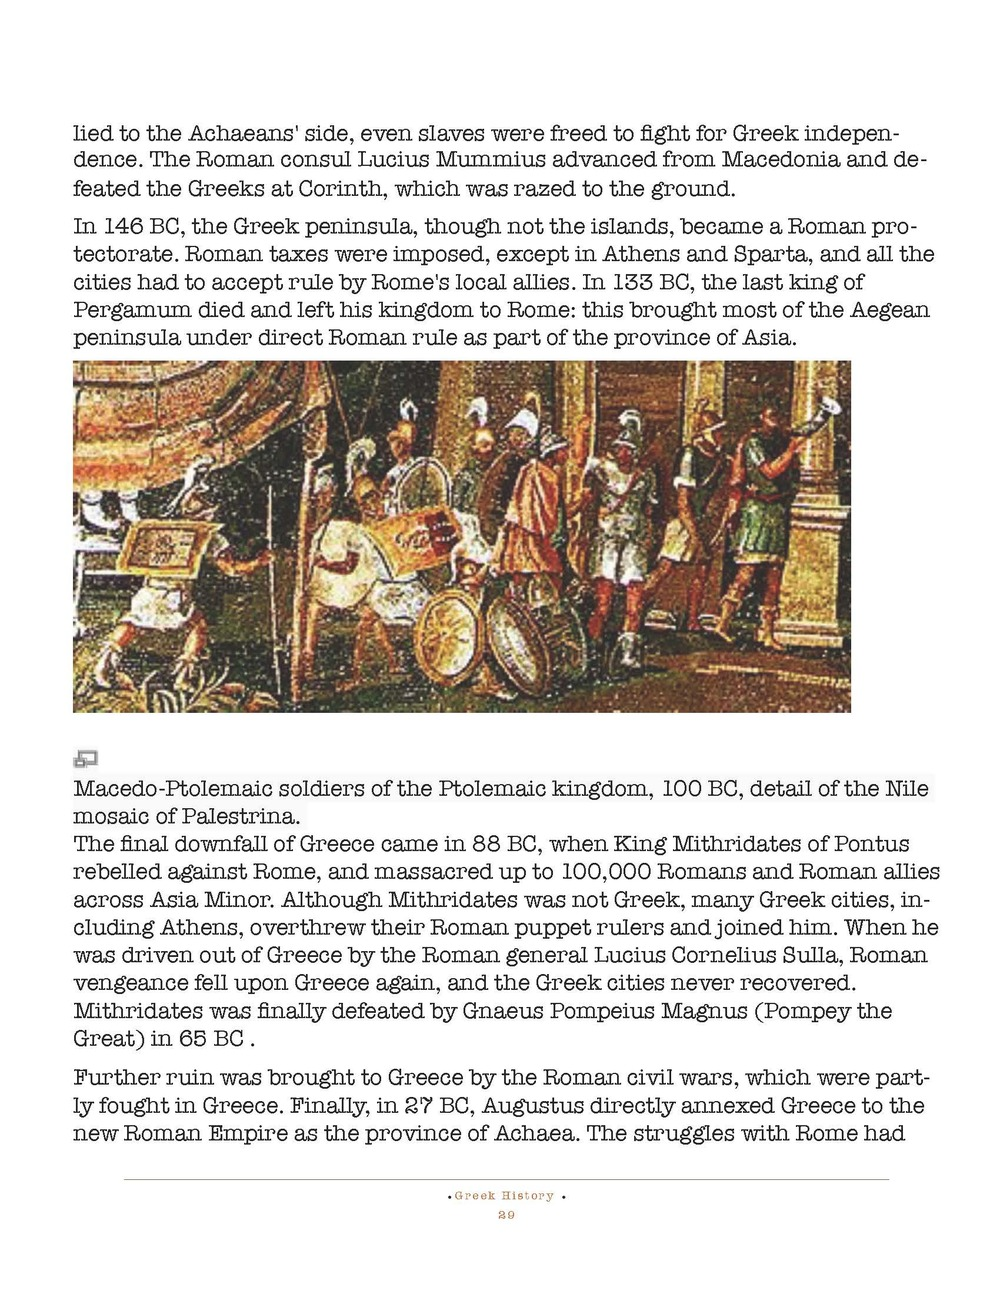 HOCE- Ancient Greece Notes_Page_029.jpg